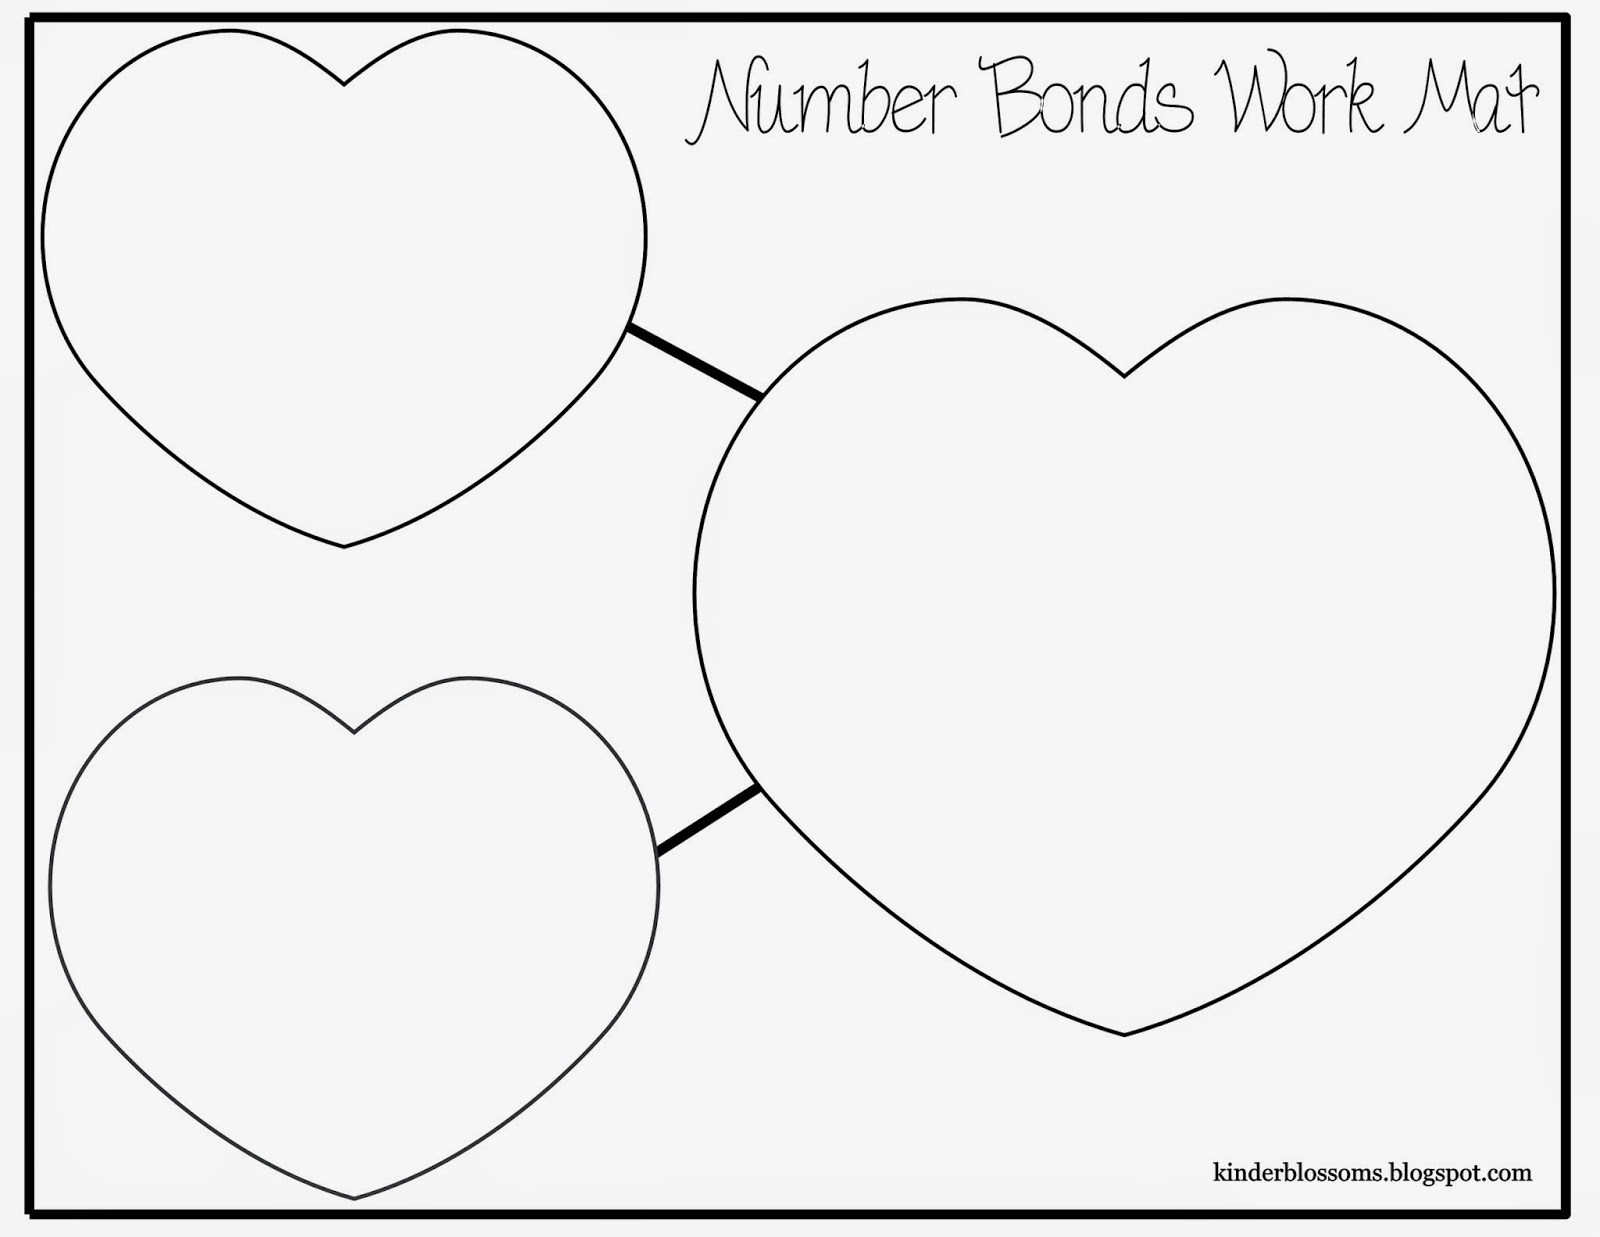 Worksheet Number Bond Worksheet Fun Worksheet Study Site